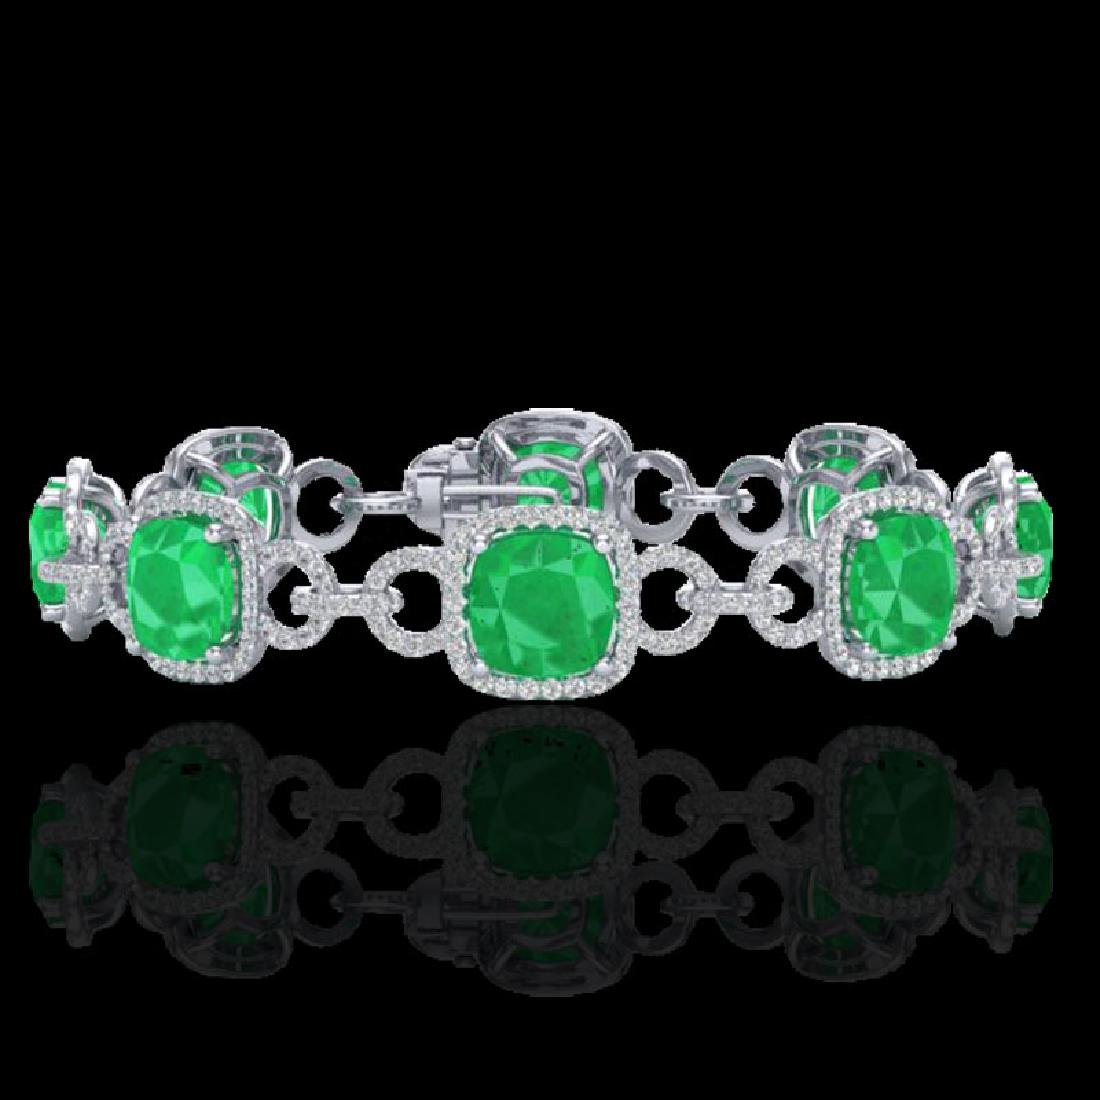 25 CTW Emerald & Micro VS/SI Diamond Bracelet 14K White